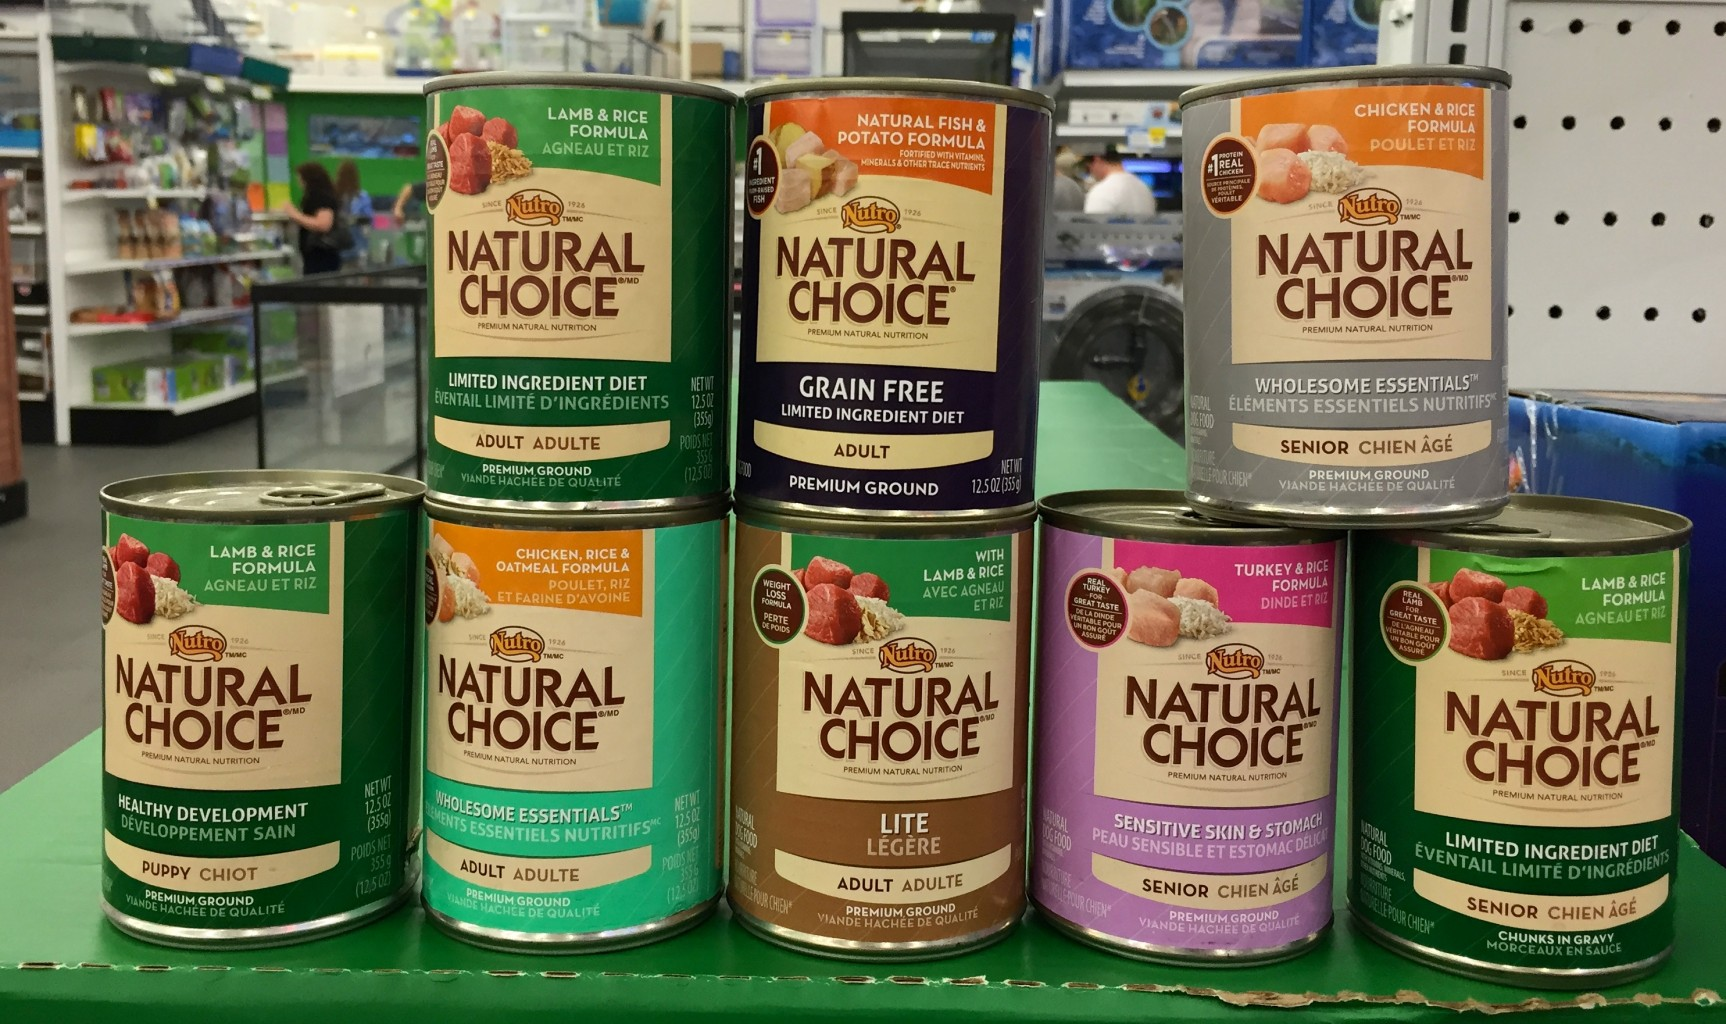 The natural choice